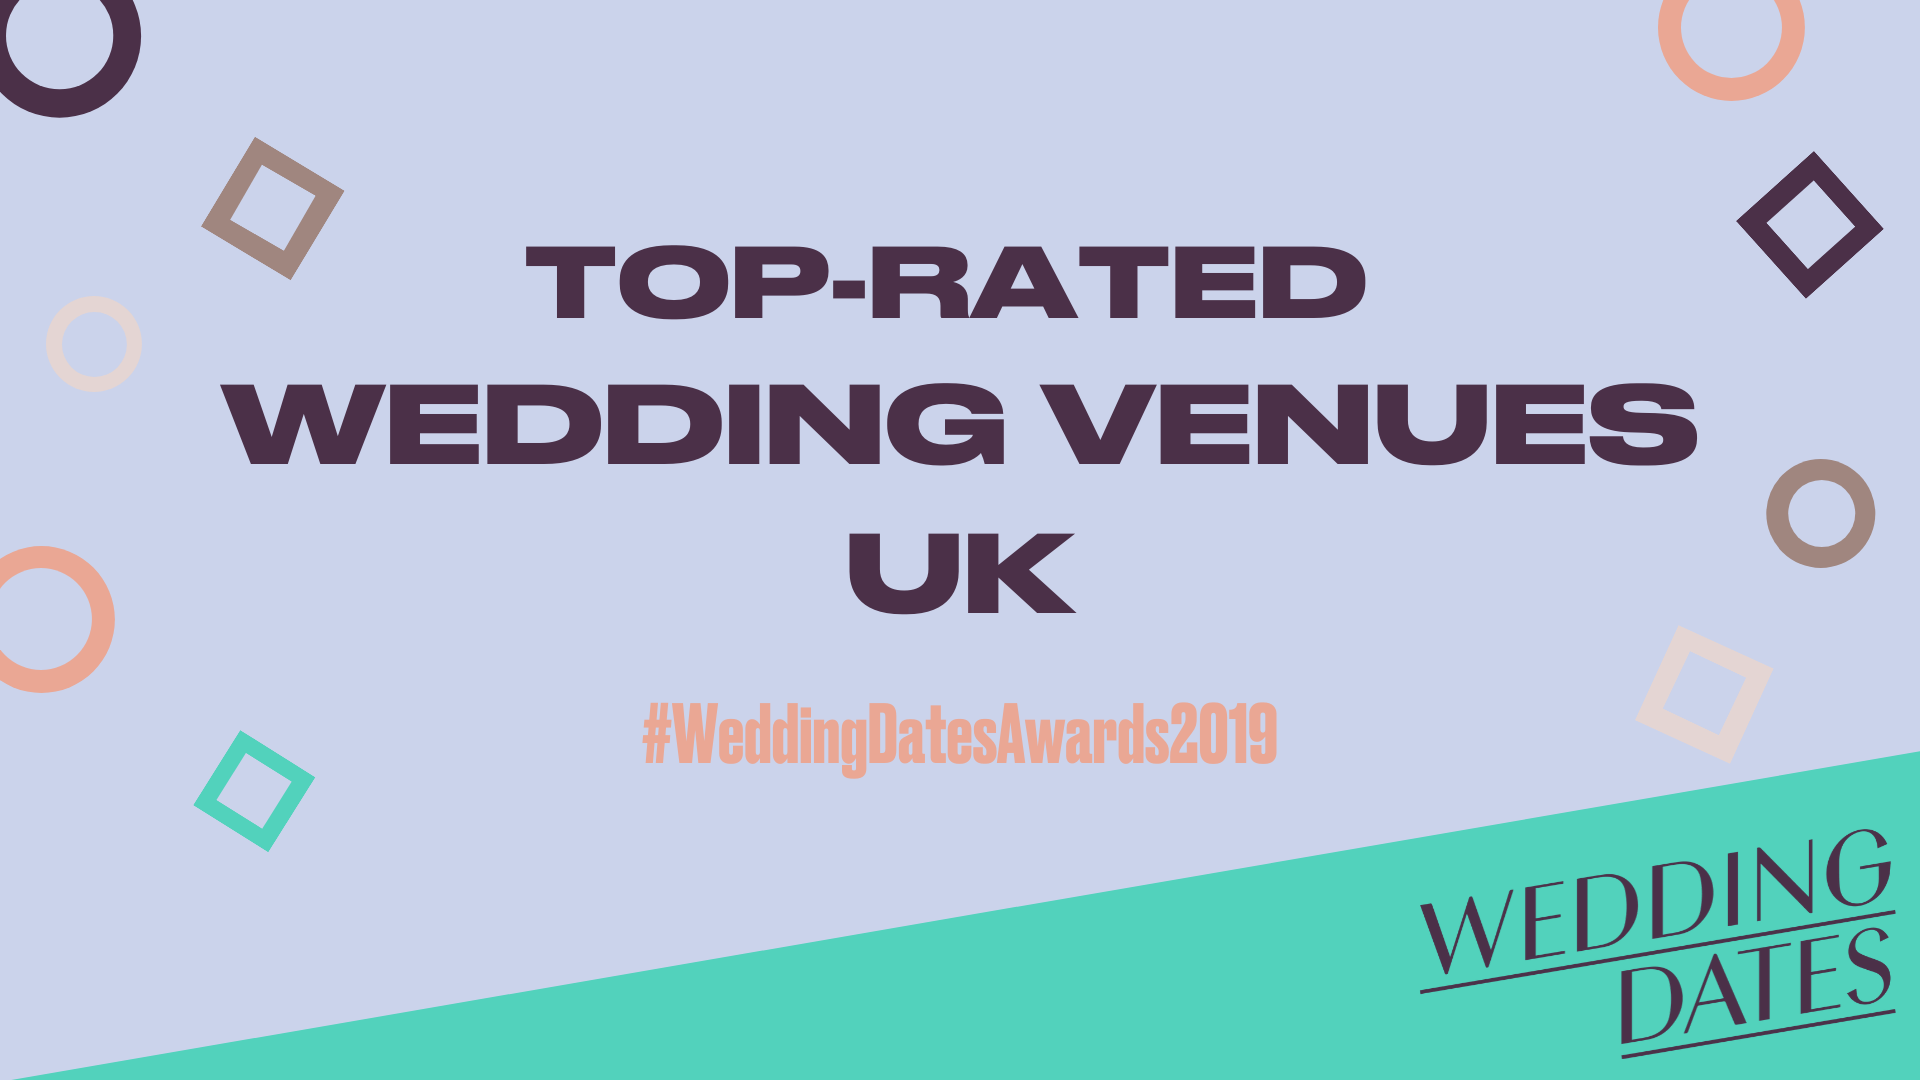 WEDDINGDATES AWARDS 2019 – TOP RATED WEDDING VENUES ANNOUNCED